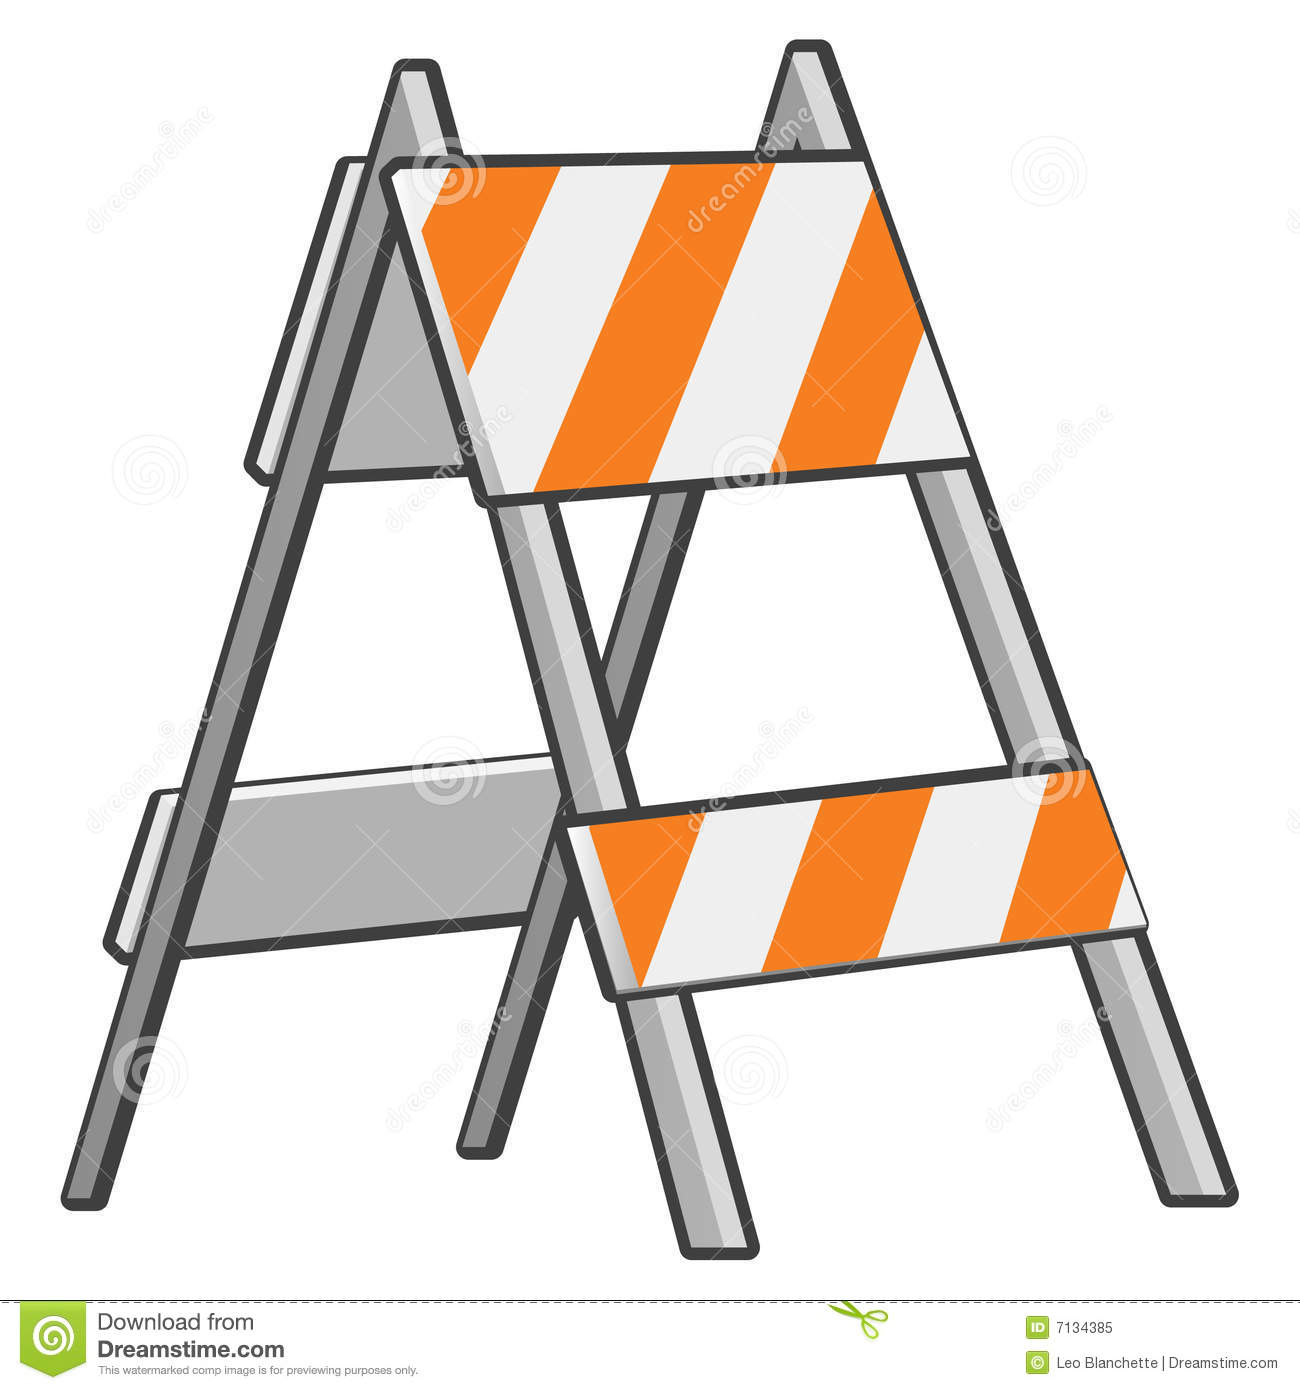 White Car Template moreover Stock Photo Unmanned Aerial Vehicle Uav Body Structure Wire Model Image45649639 besides Royalty Free Stock Photo Caution Barrier Sawhorse Image7134385 together with Romantic couple Hd wallpapers furthermore capture 2 Door Graphics. on 3d vehicle graphics